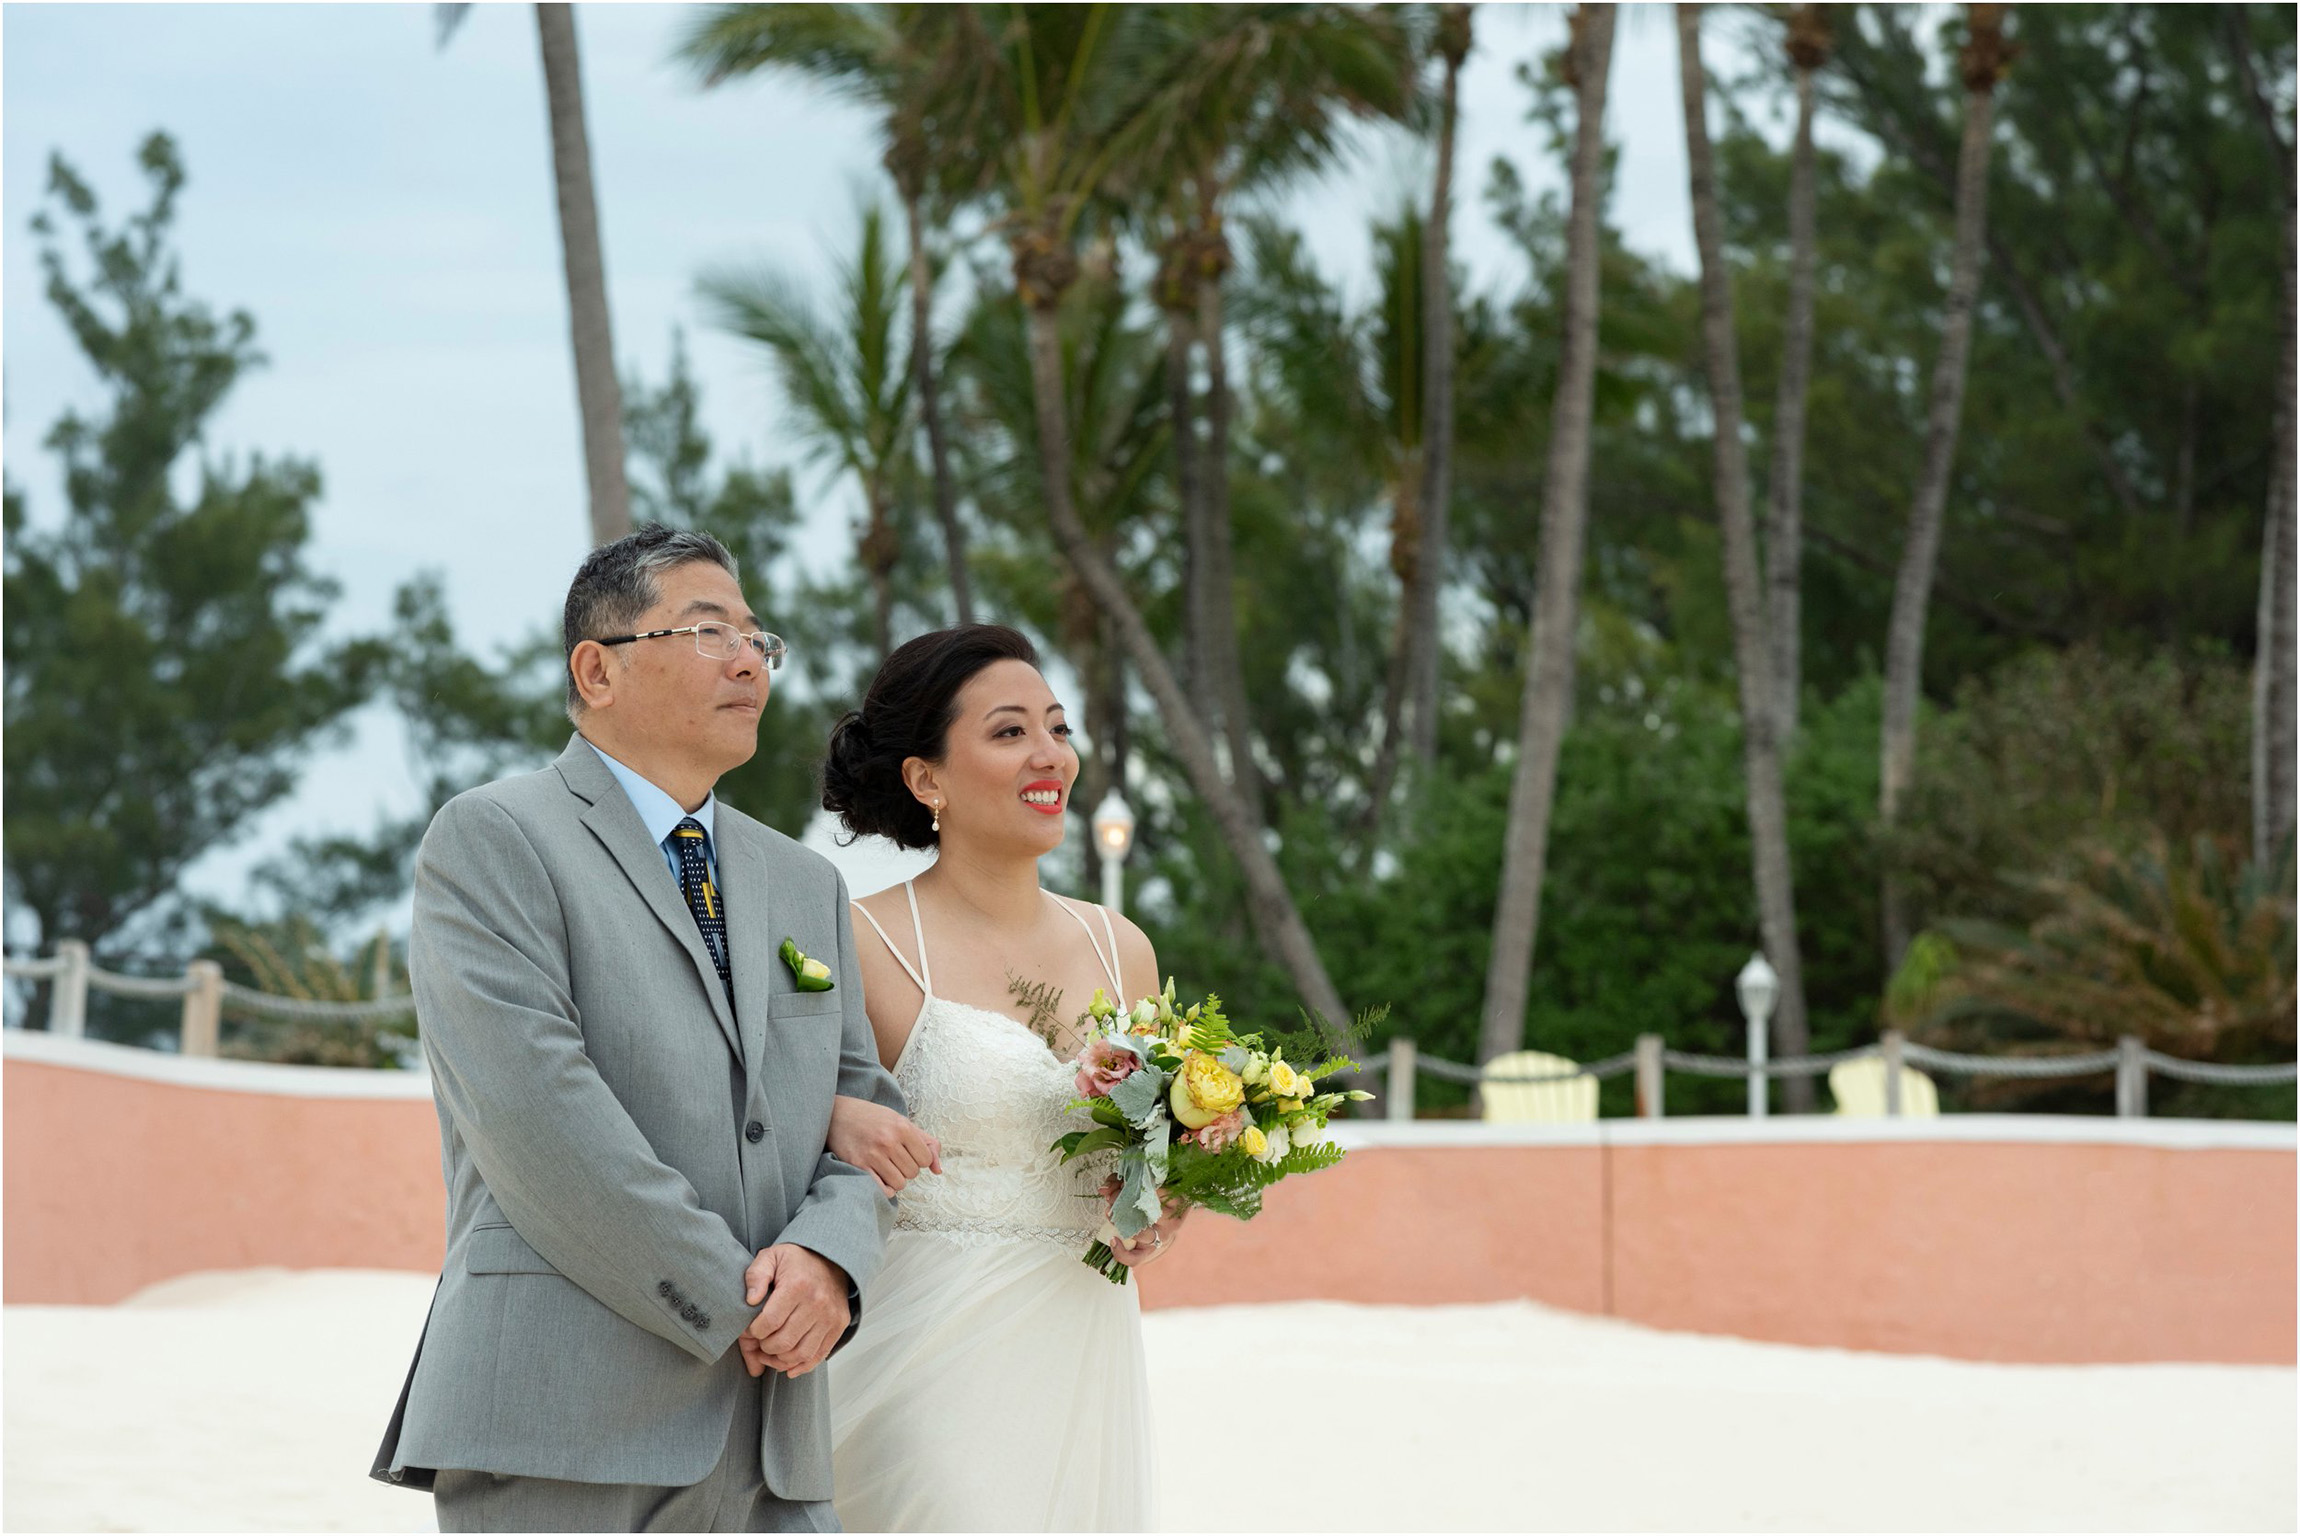 ©FianderFoto_Bermuda Wedding Photographer_Fairmont Southampton_Amy_Wilson_062.jpg